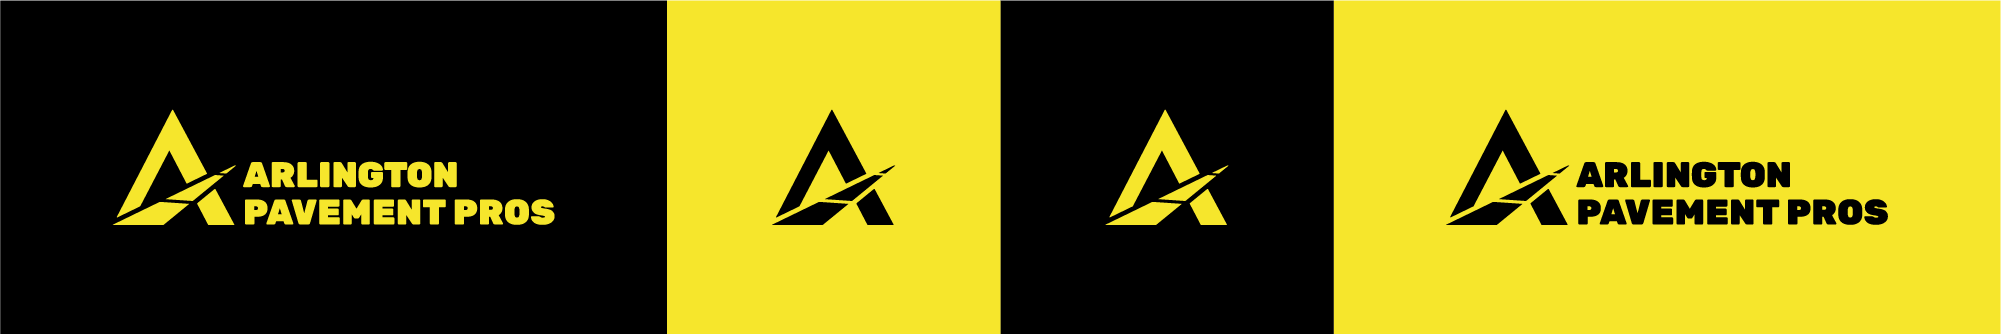 """This shows their logo and colors. Colors include high contrast is black and yellow. Their logo plays with the """"A"""" in their name, and includes a vanishing road across the arch in the """"A"""""""